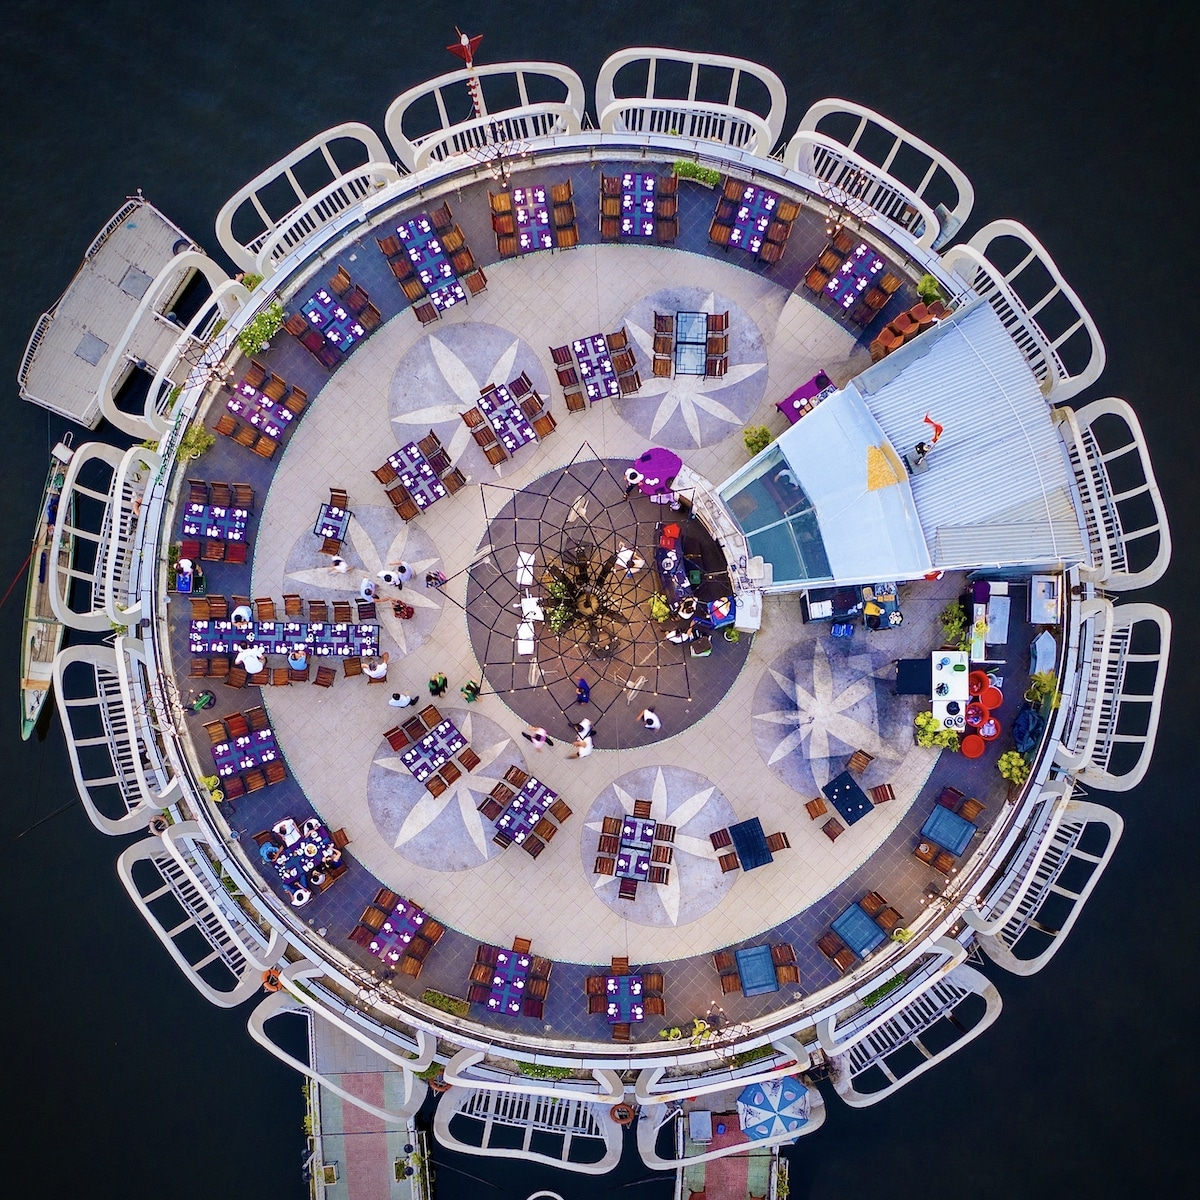 Aerial View of Floating Restaurant on the Huong River